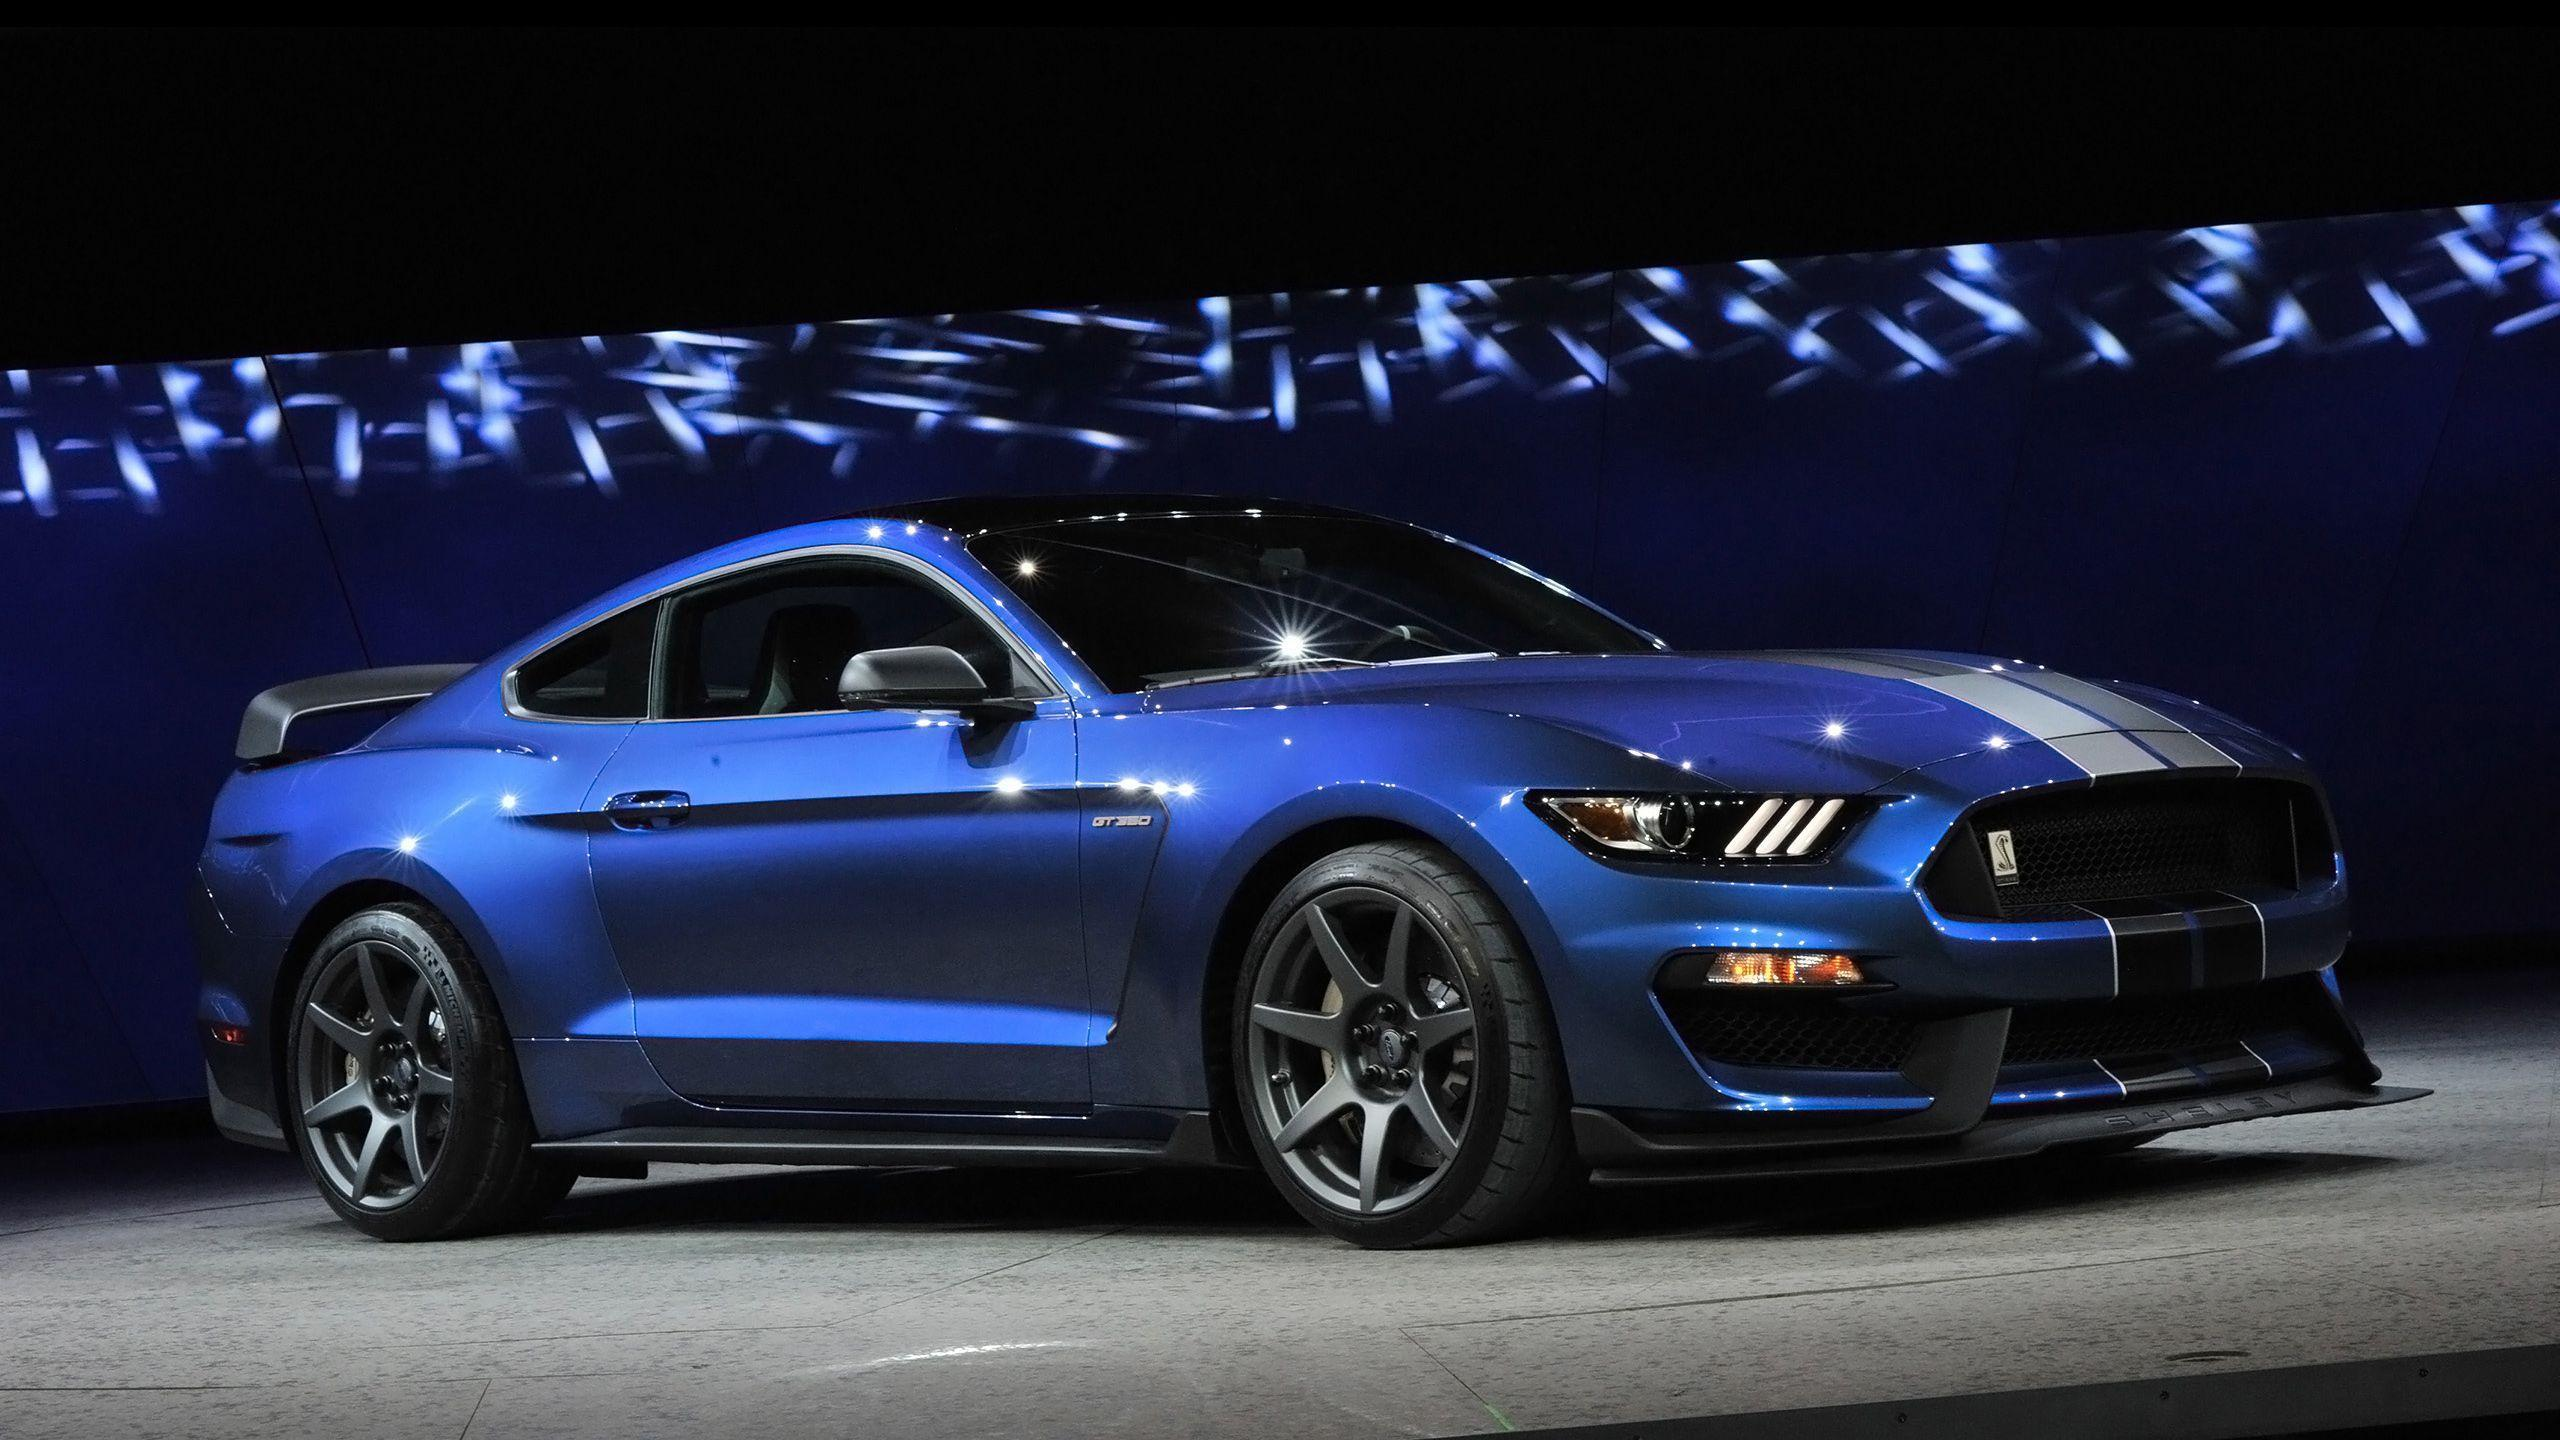 Blue Mustang Wallpapers Top Free Blue Mustang Backgrounds Wallpaperaccess